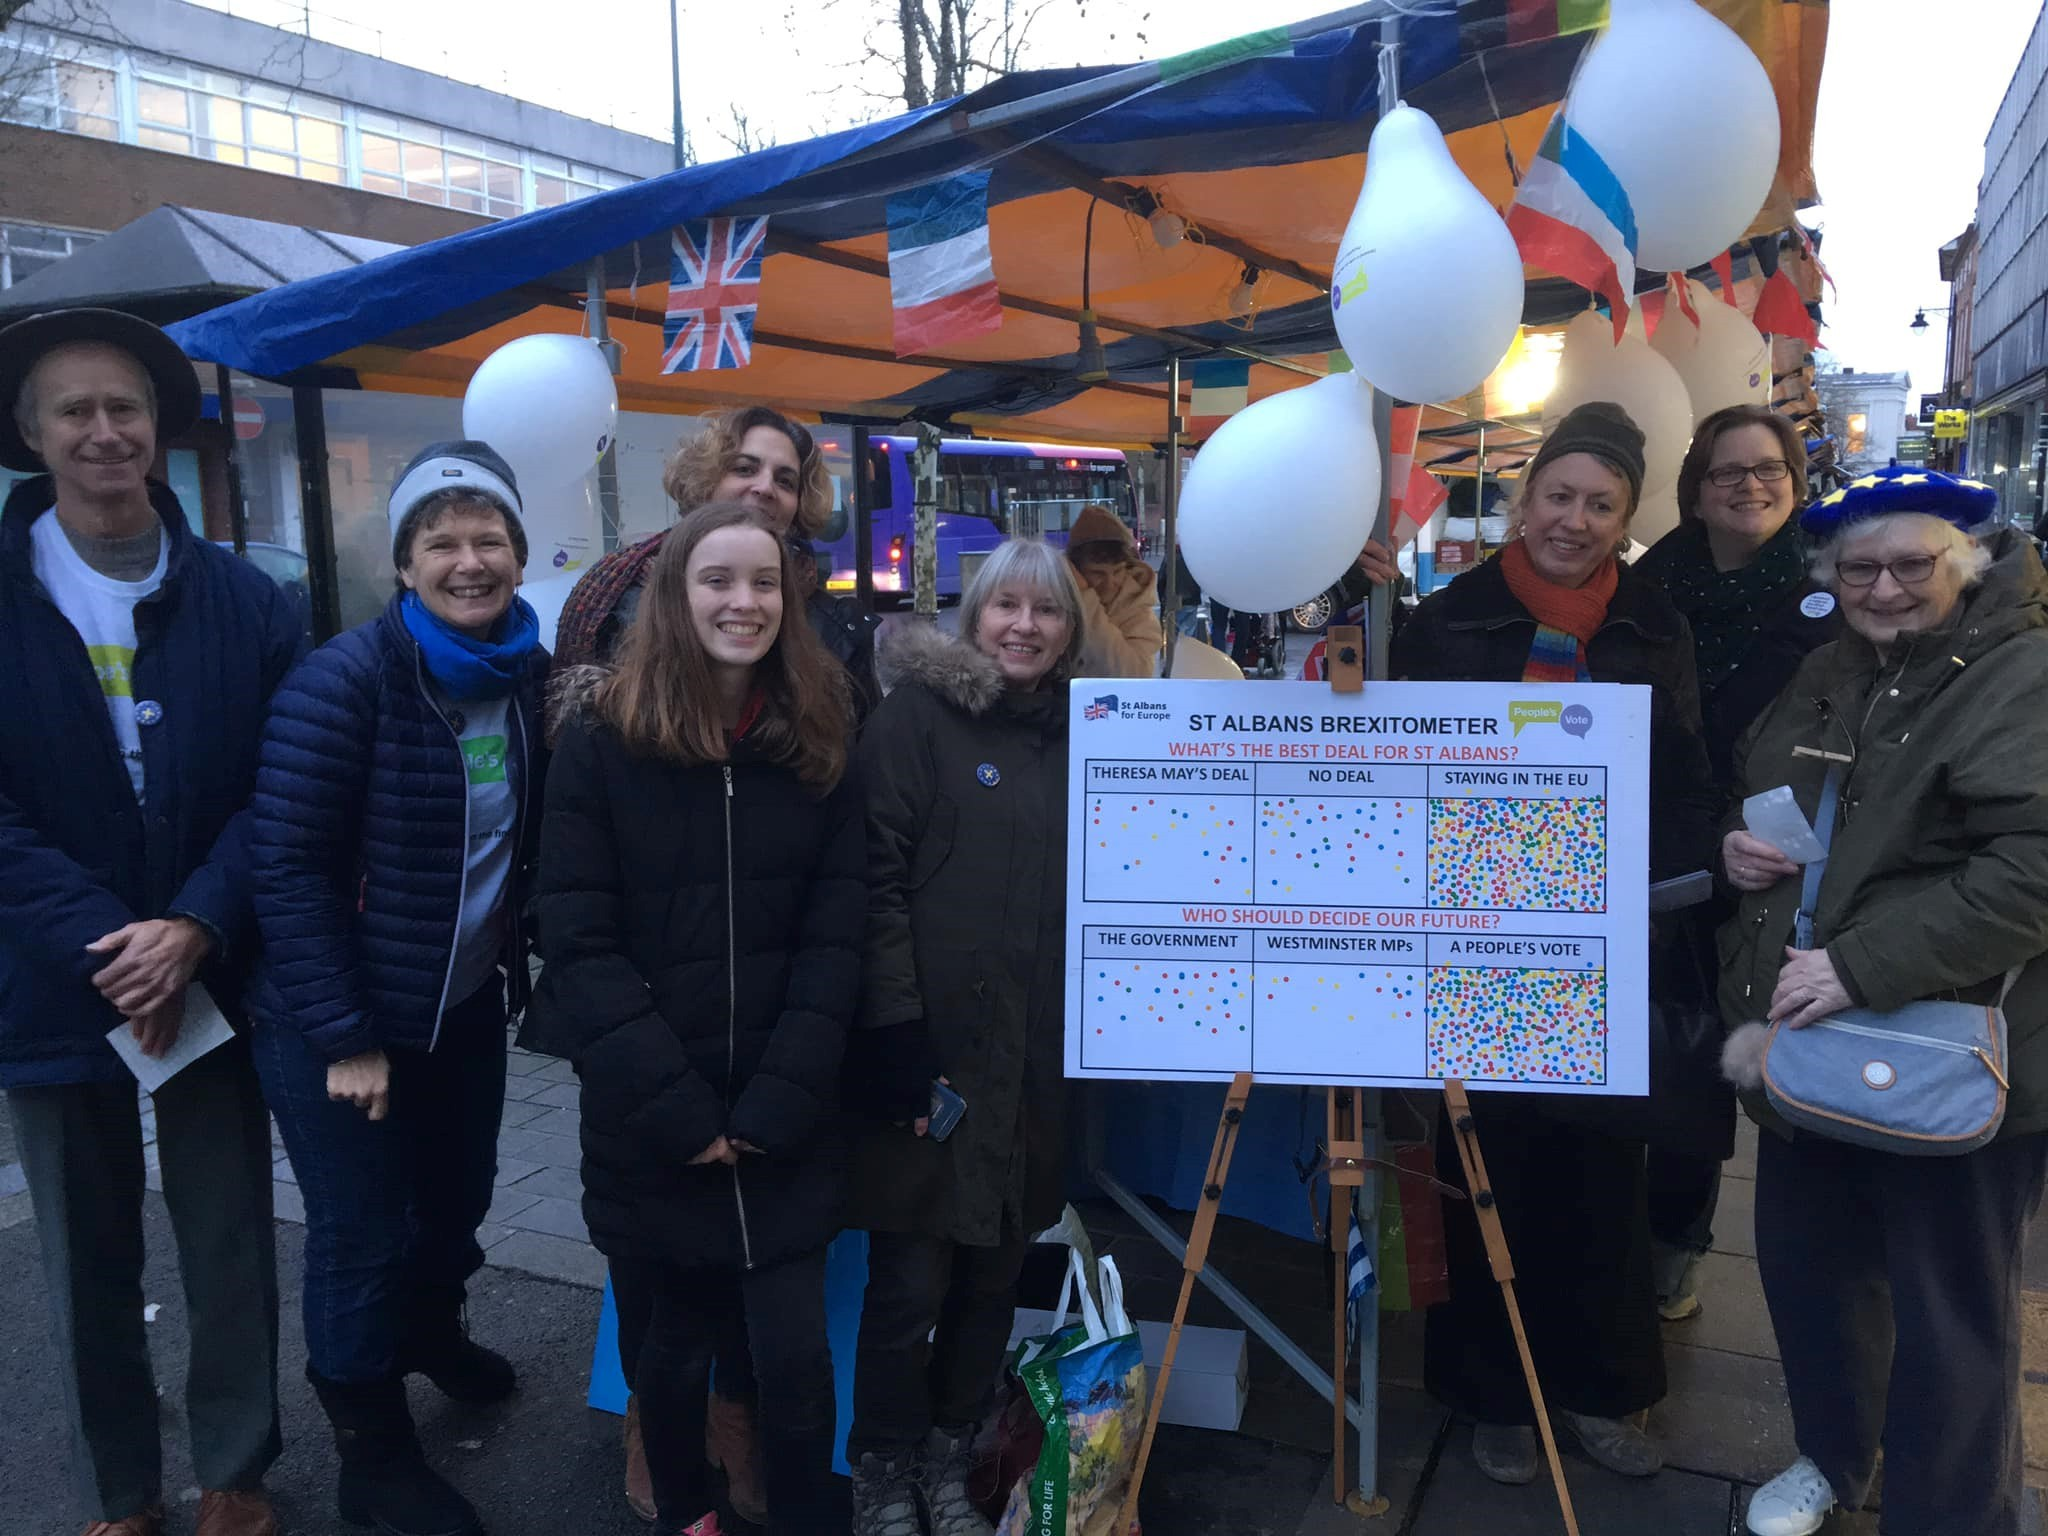 St Albans For Europe, which has been campaigning for a 'People's Vote' on the final Brexit deal, held a campaign in the city centre last Saturday to join a National Day of Action